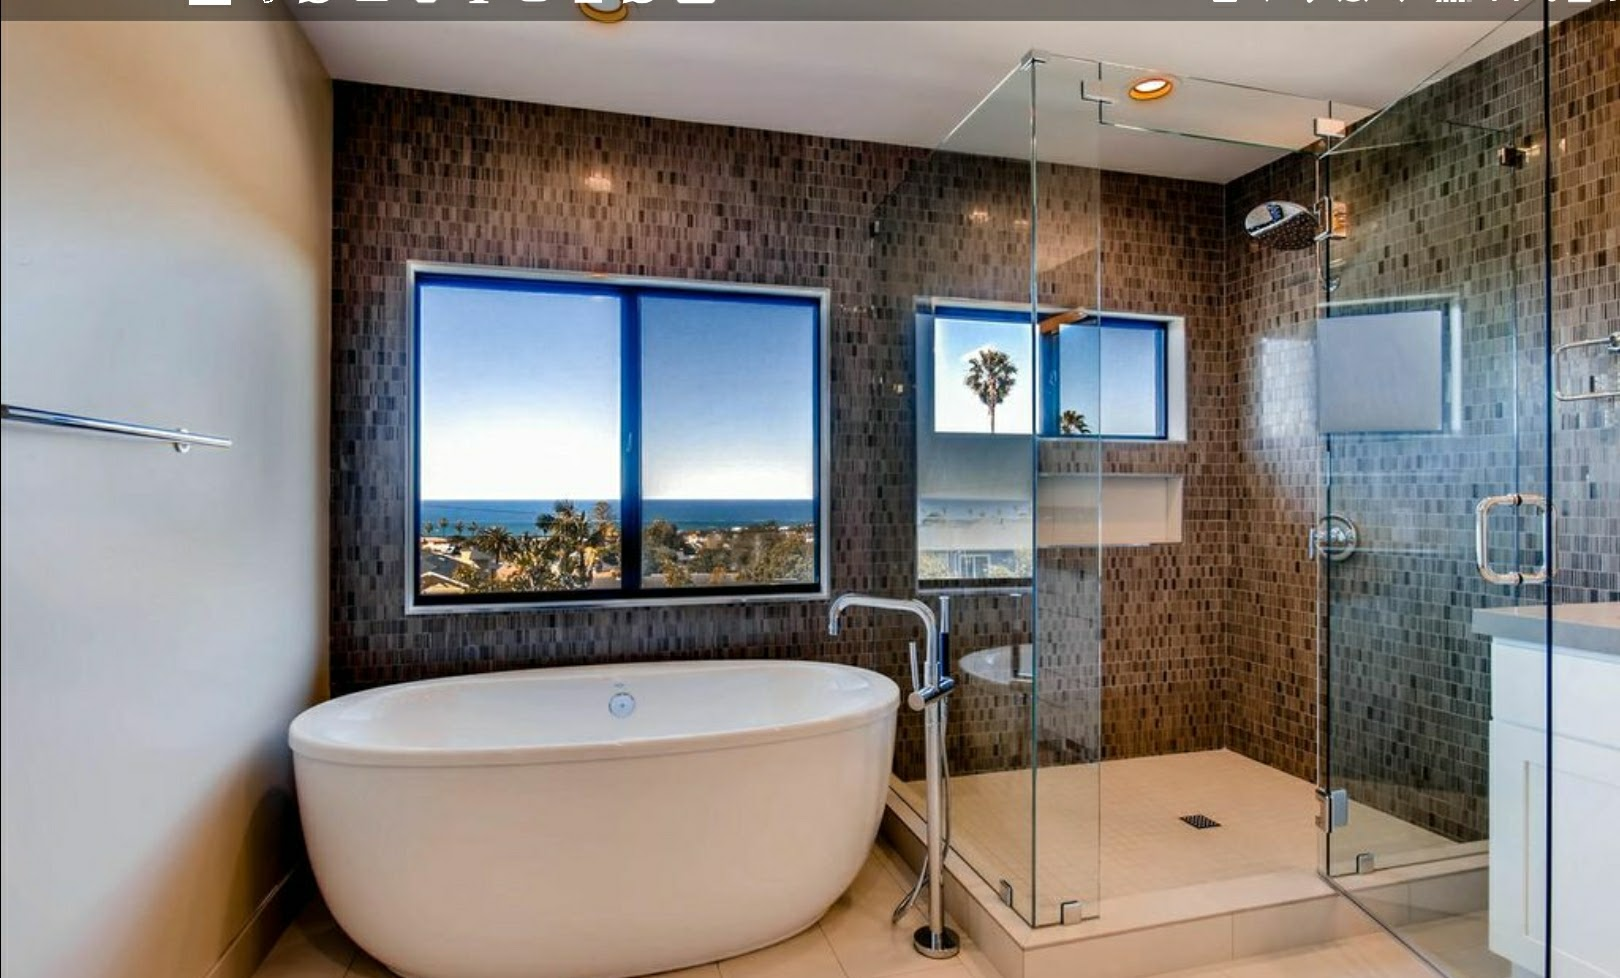 Bathroom Cabinets San Diego bathroom cabinets san diego, bathroom remodeling in san diego